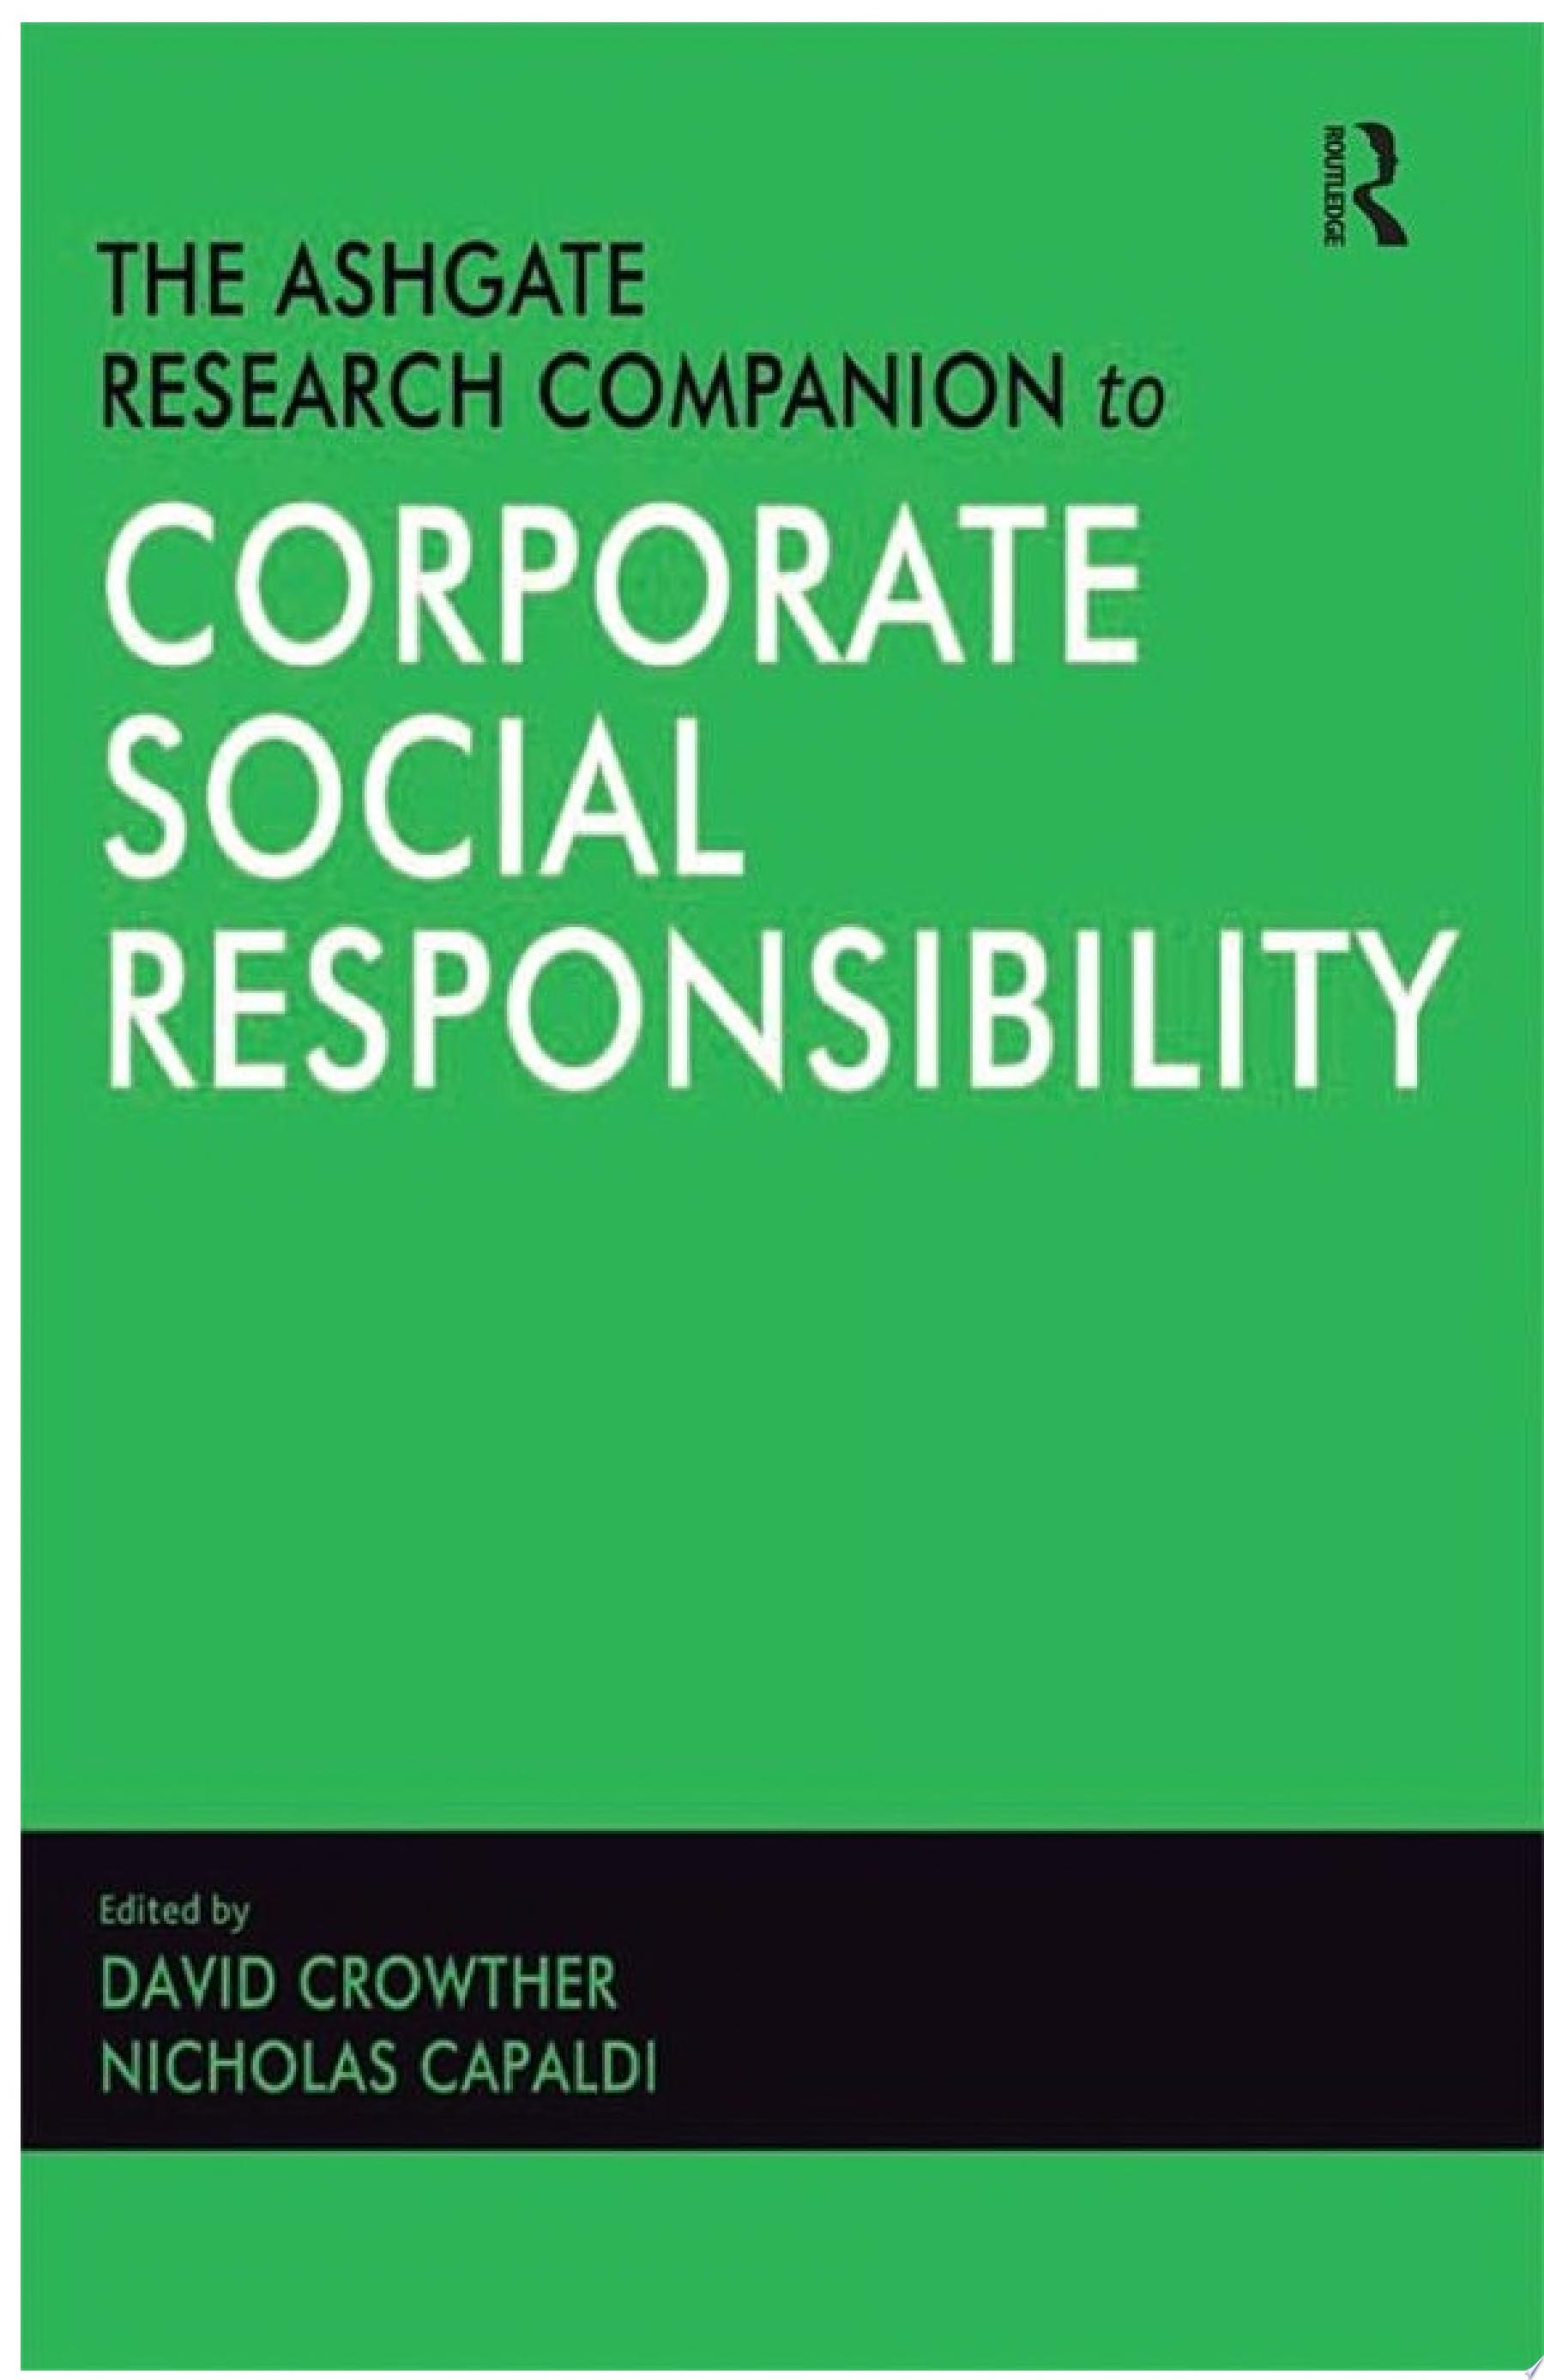 The Ashgate Research Companion to Corporate Social Responsibility